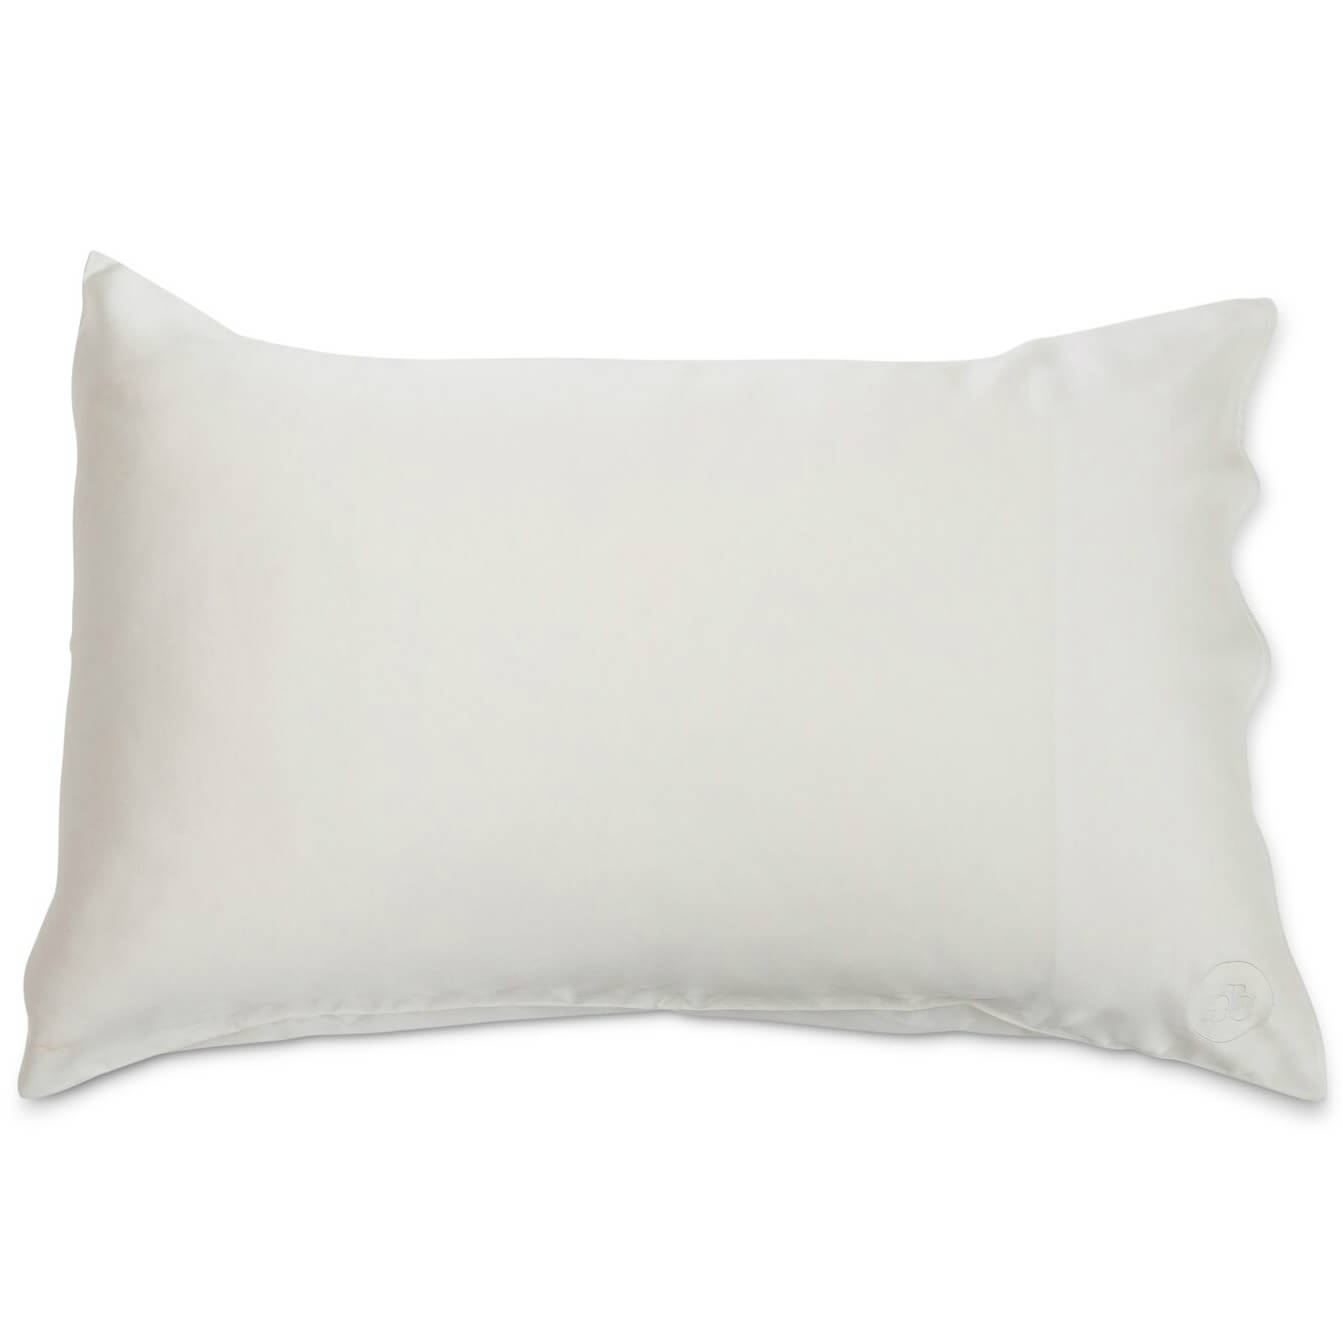 The Goodnight Co. Silk Pillowcase - Natural White